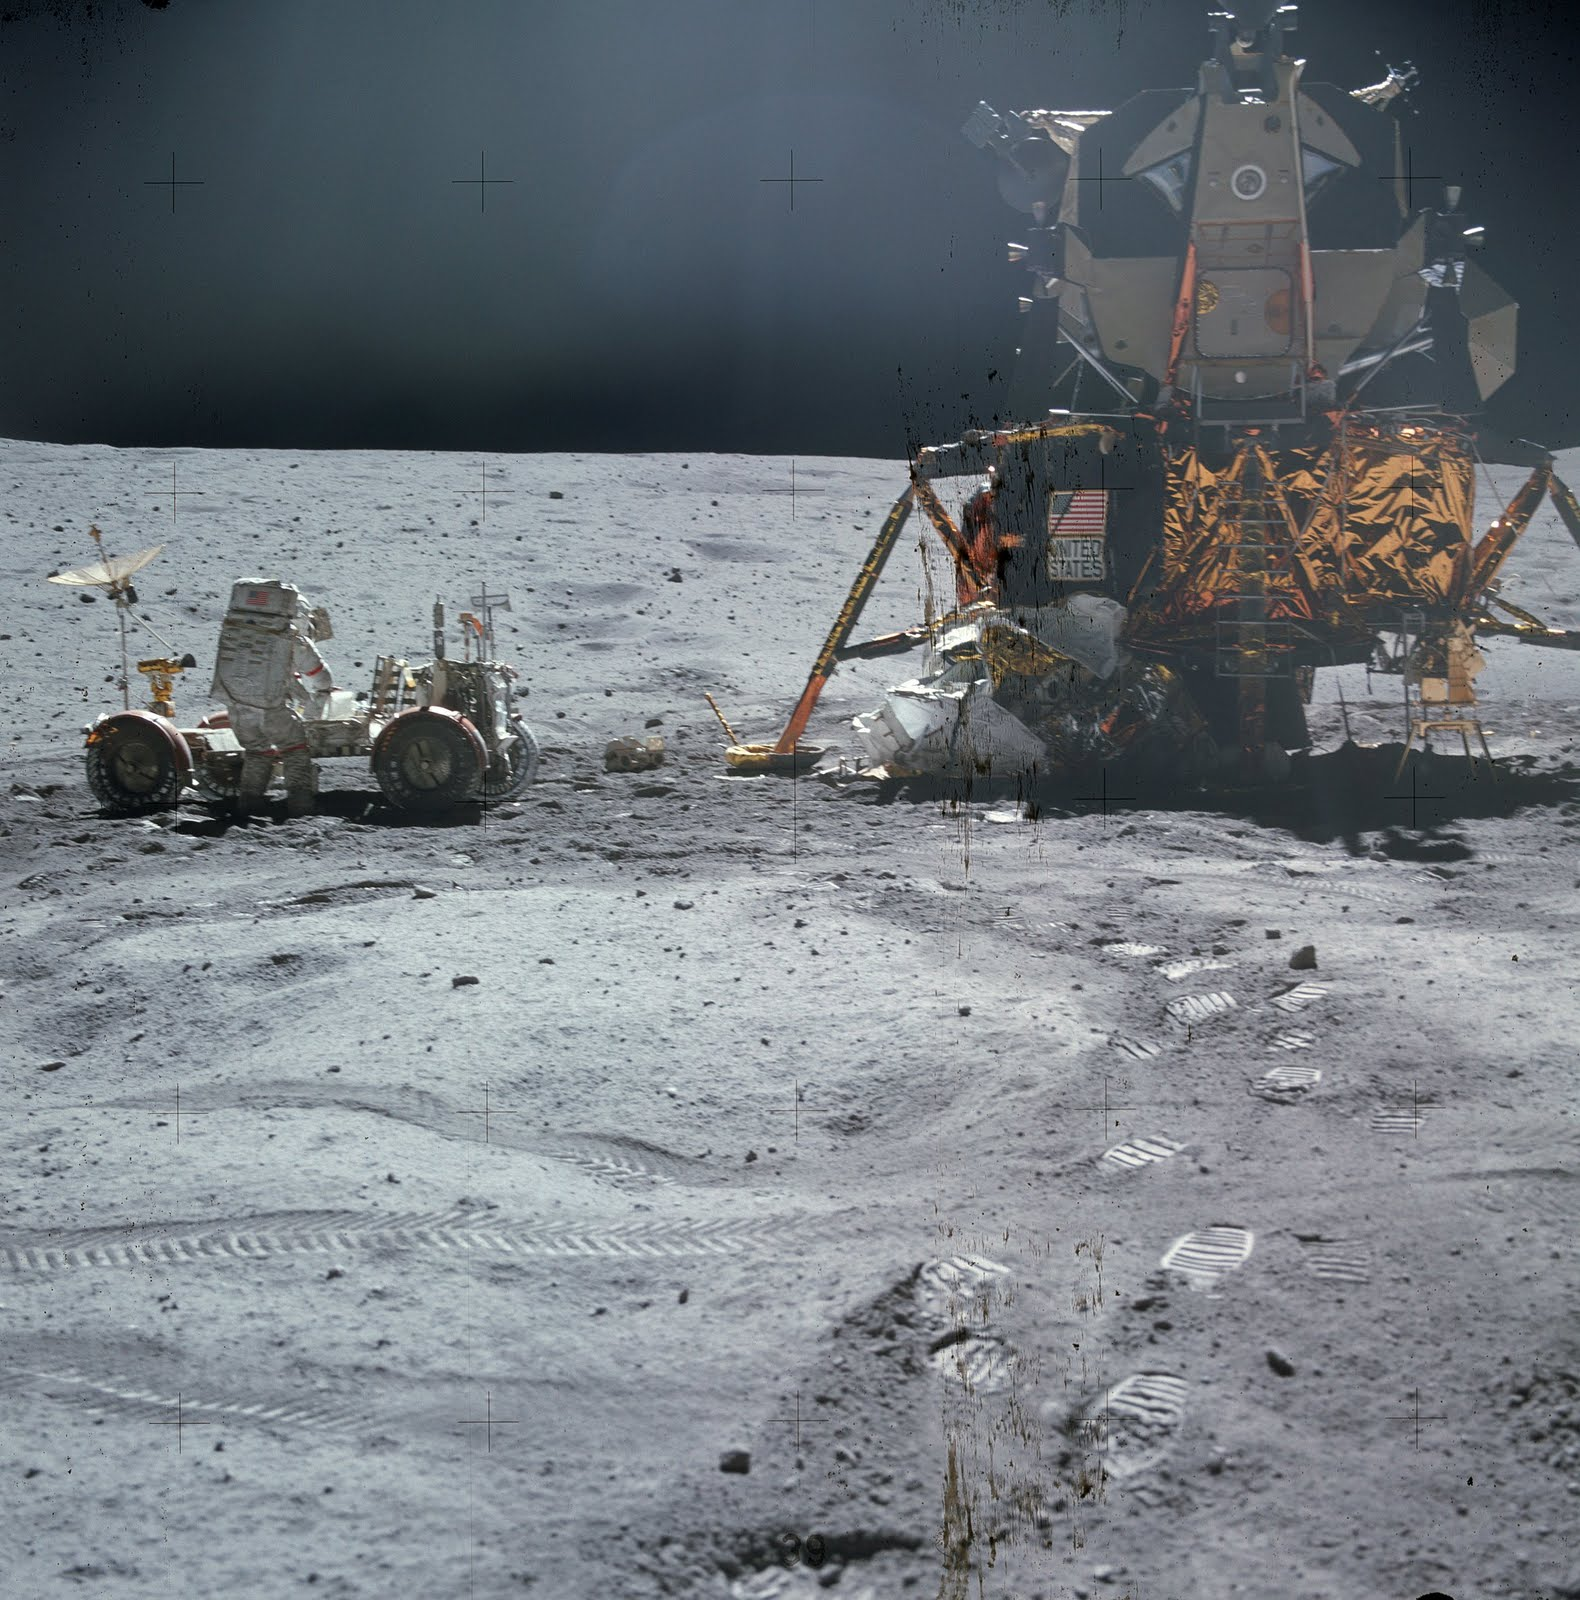 Apollo 16 lands on Moon - April 20, 1972 ~ vintage everyday